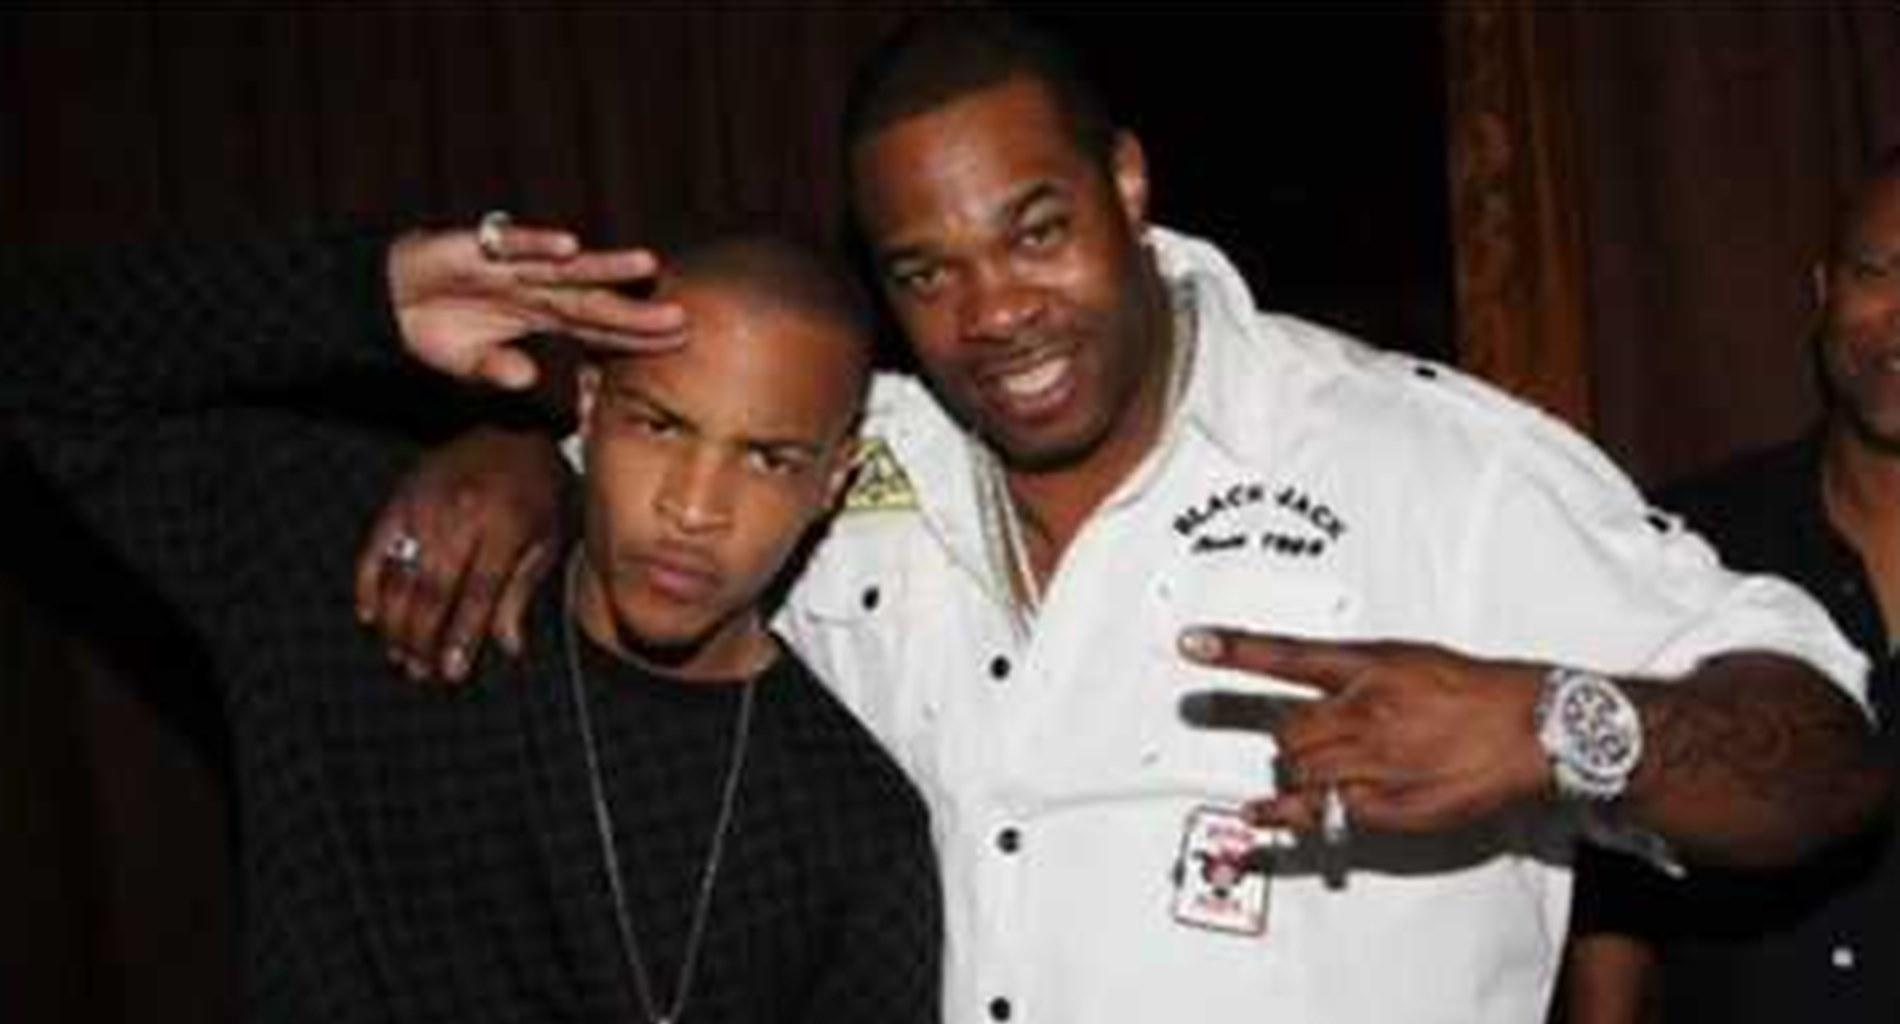 T.I. Still Wants To Do A Verzuz Battle With 50 Cent As Busta Rhymes Begs Him In New Video To Take Him On Instead